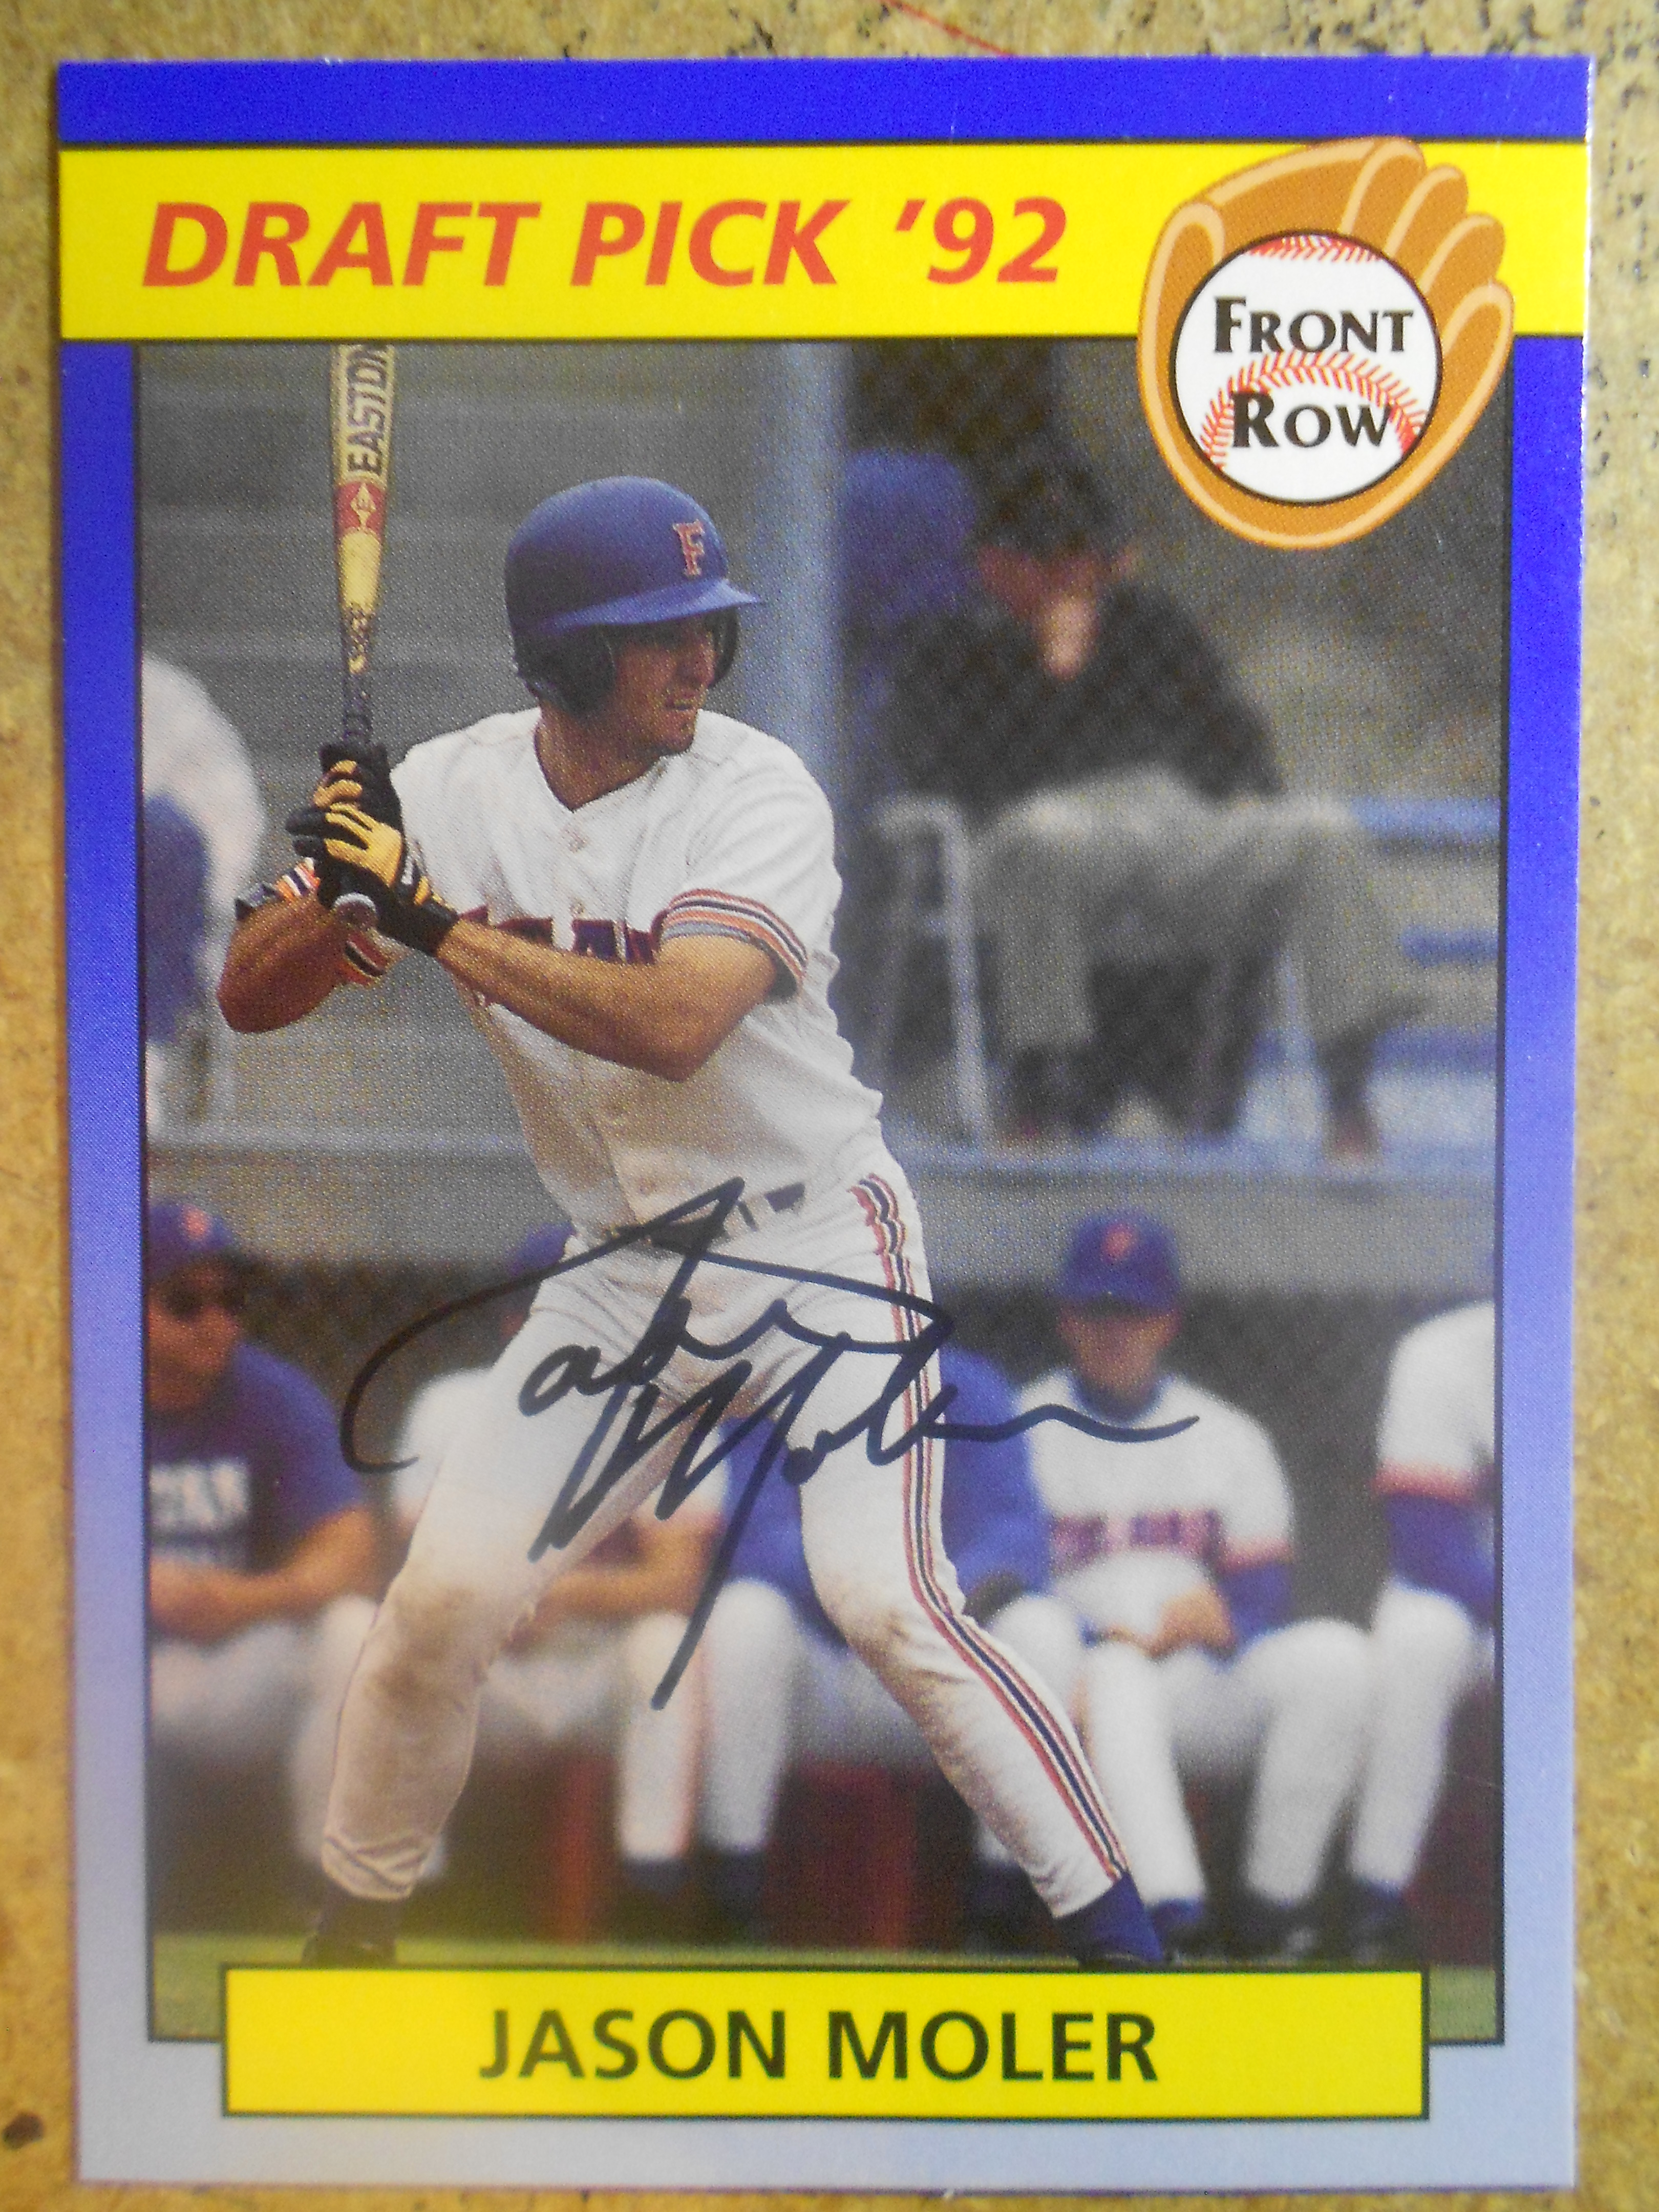 1992 Front Row Draft Picks Autographs #11 Jason Moler